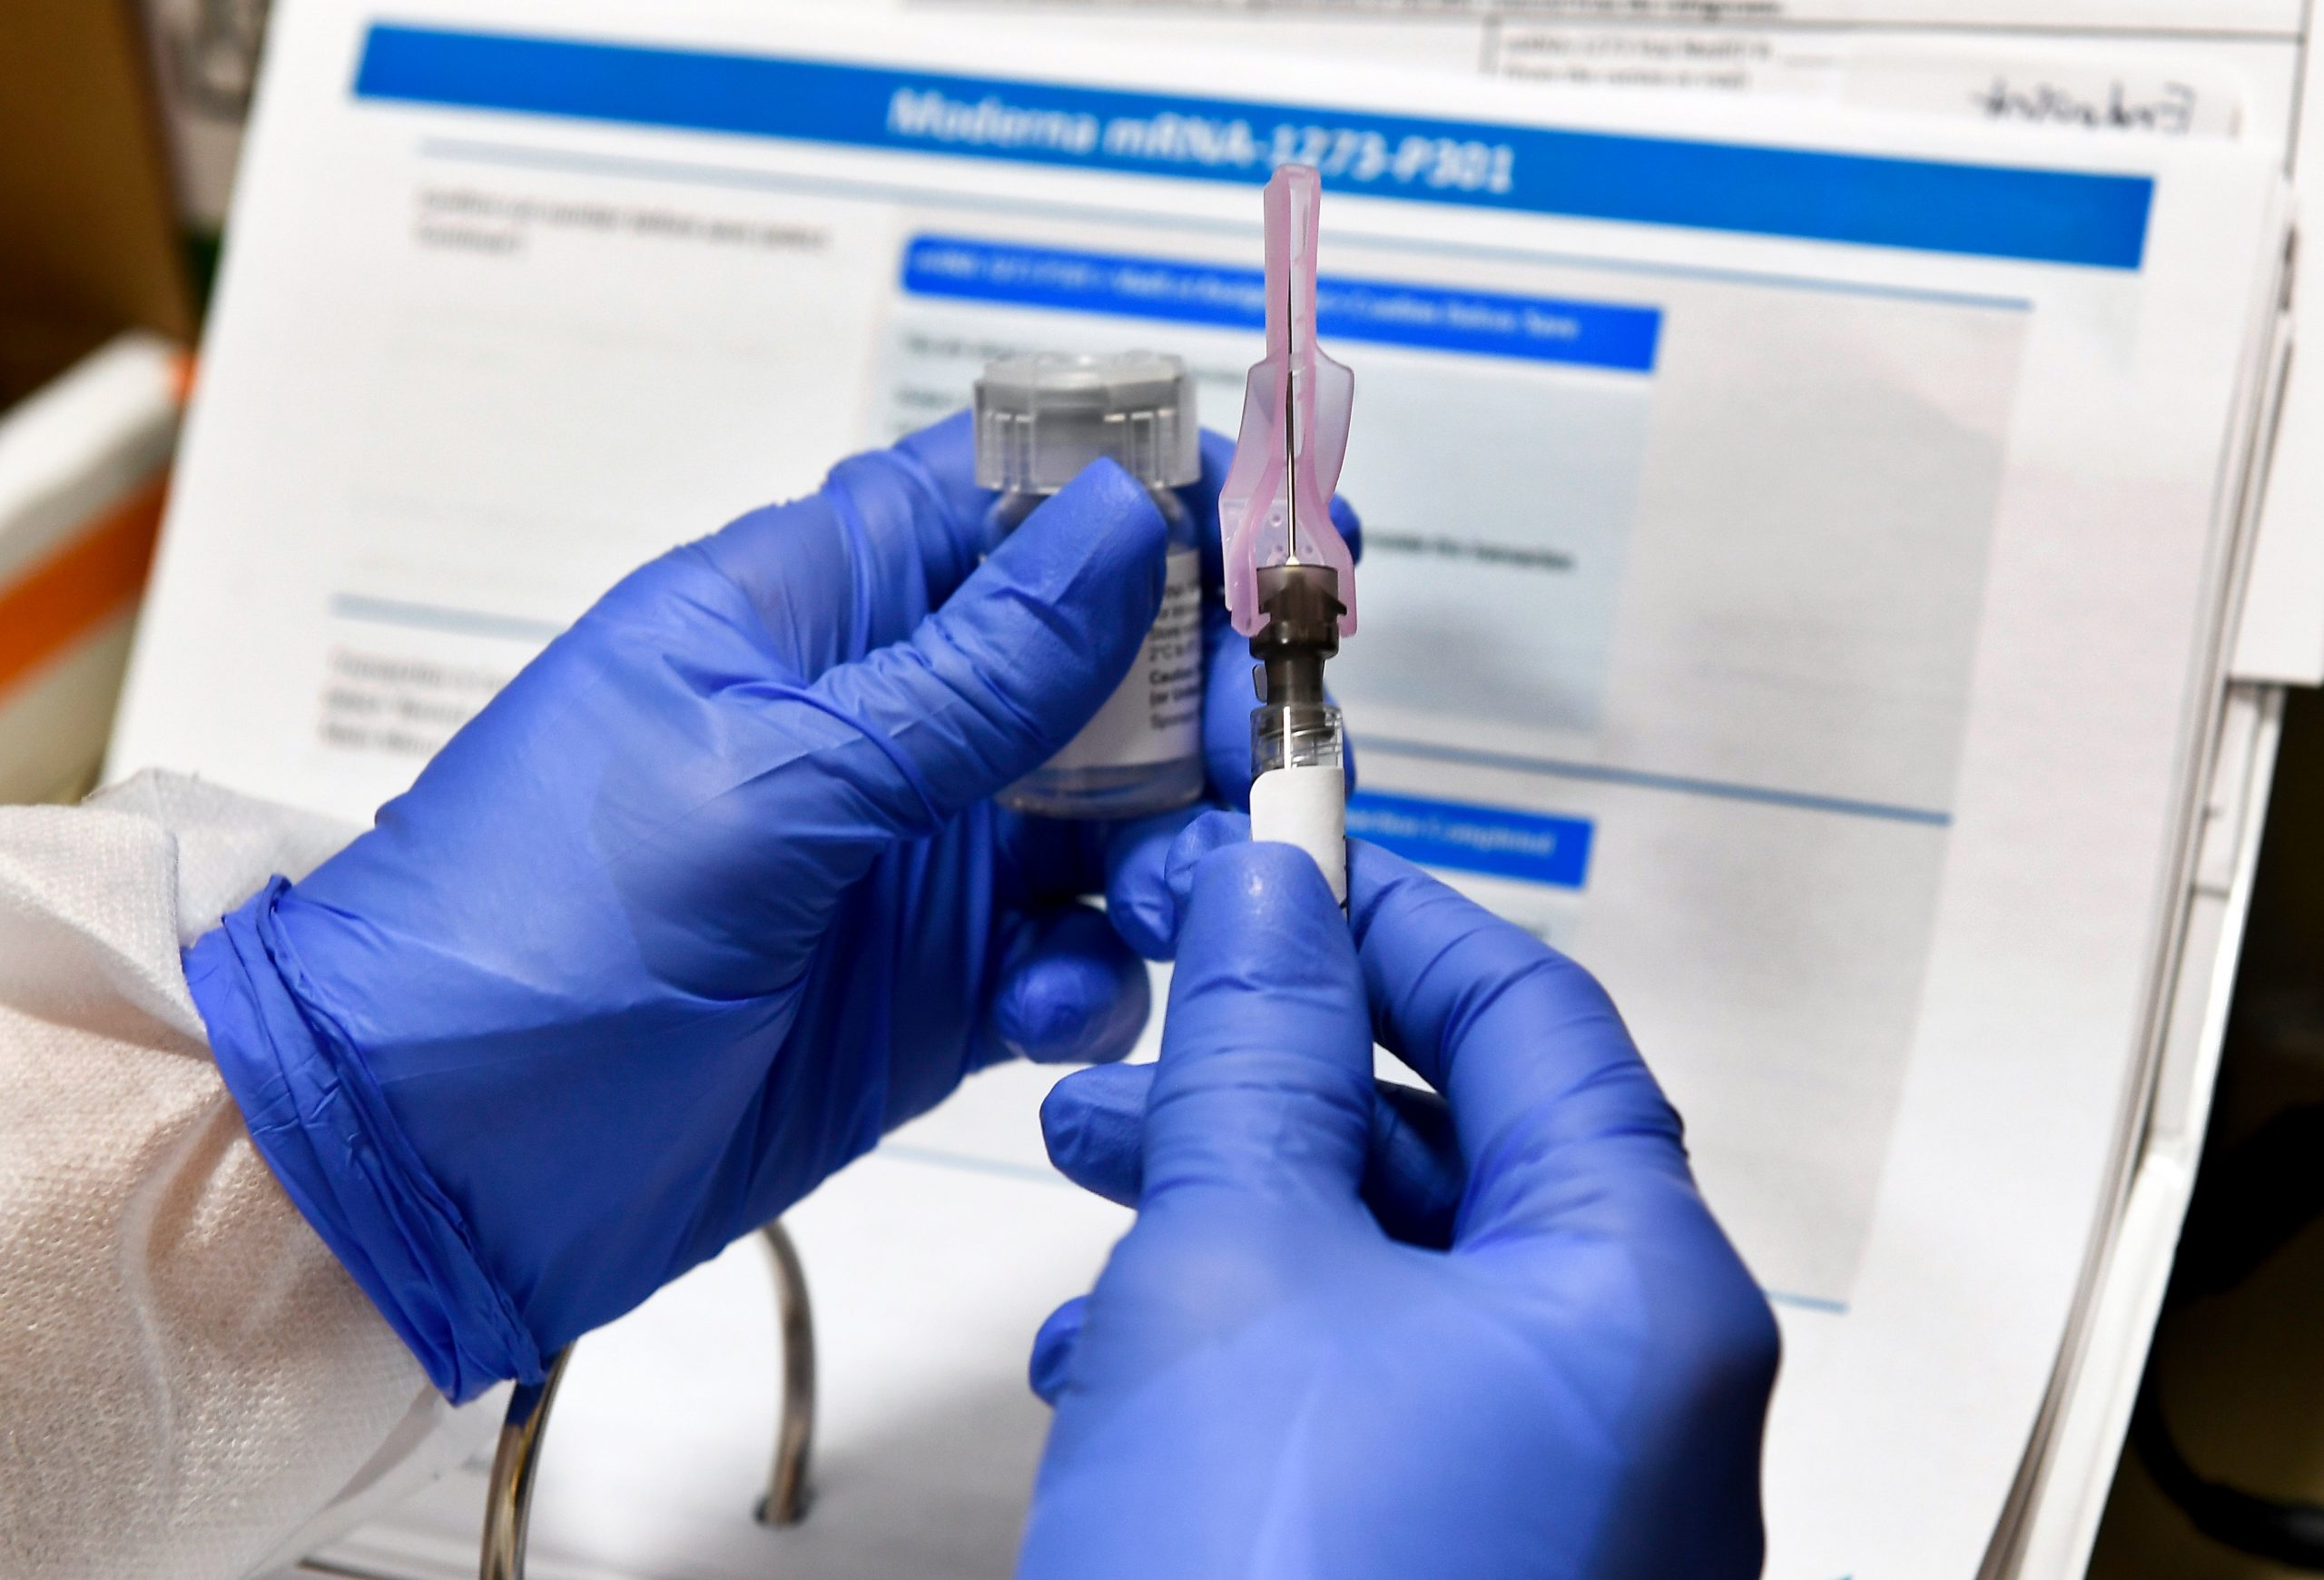 Covid news live: latest case where the UK ordered 5 million doses of Moderna vaccine